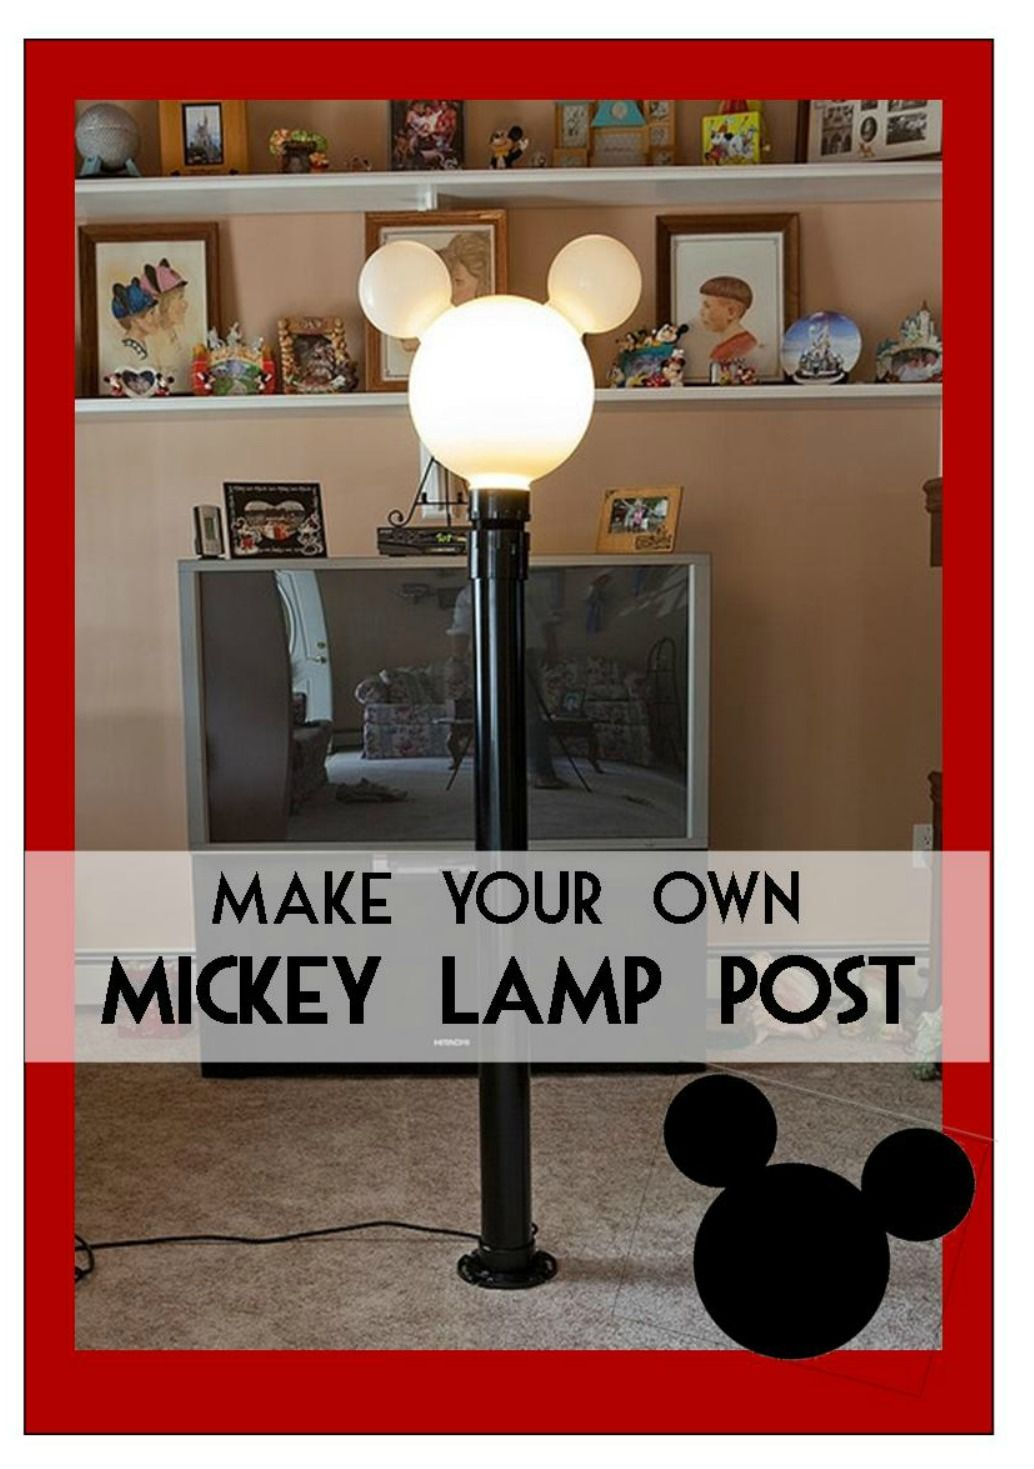 Mickey Lamp Post Instructions On How To Build Your Very